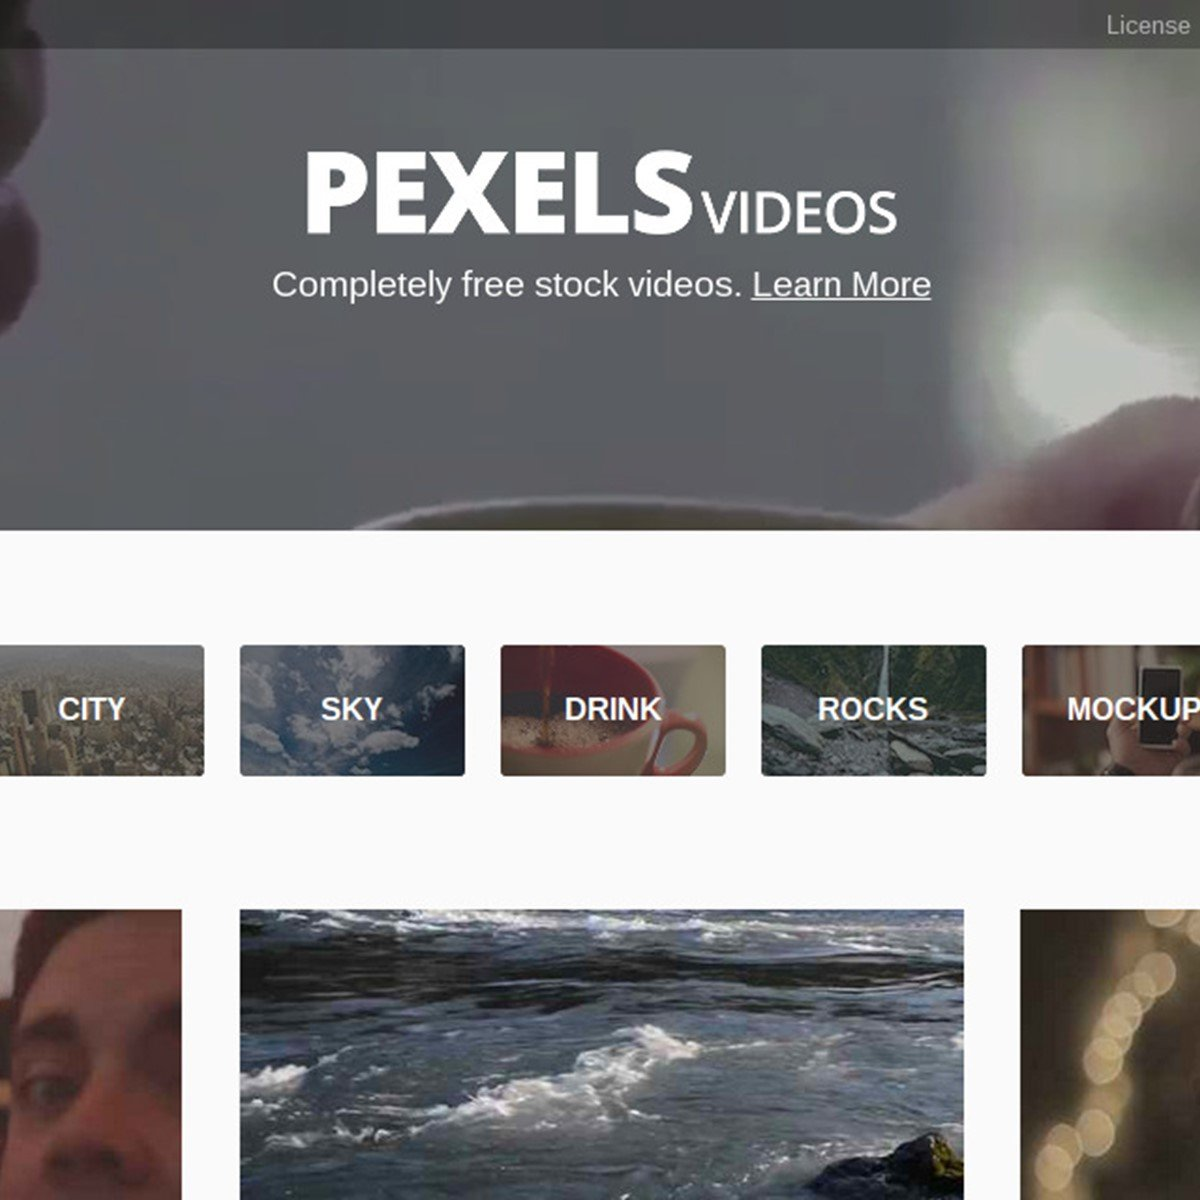 pexels videos alternatives and similar websites and apps